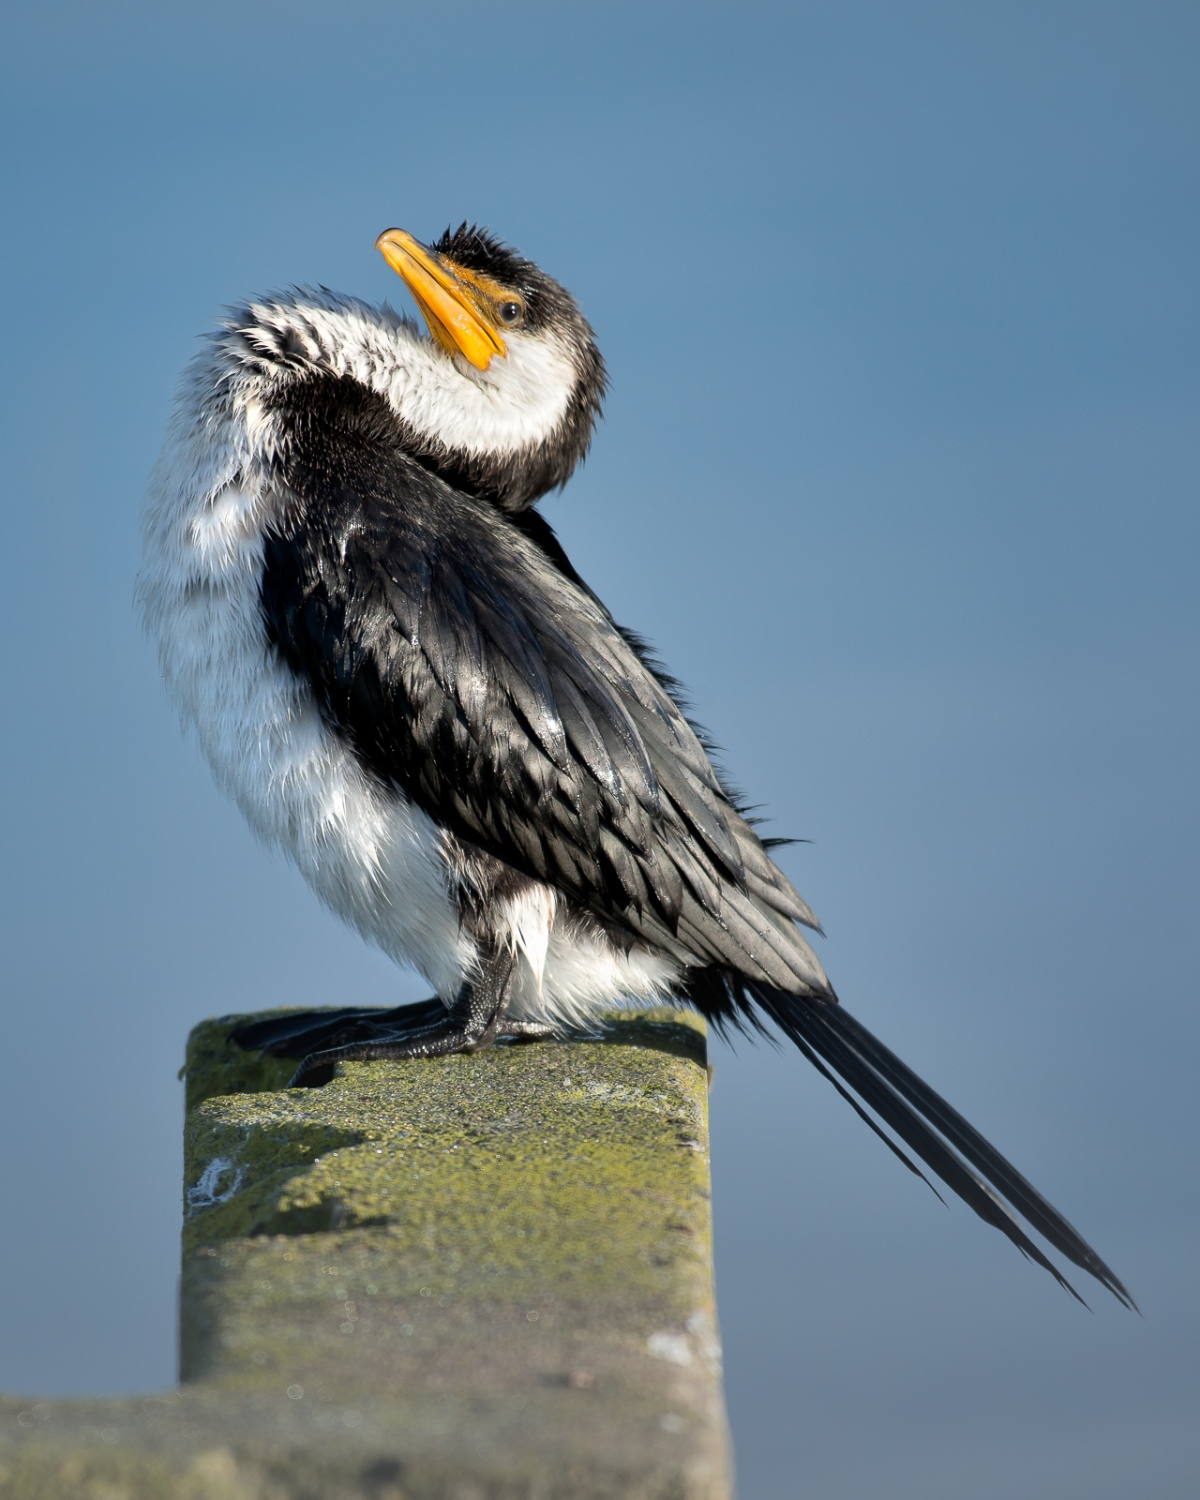 A very well known cormorant. I really think this bird has adopted a completely relaxed approach around humans